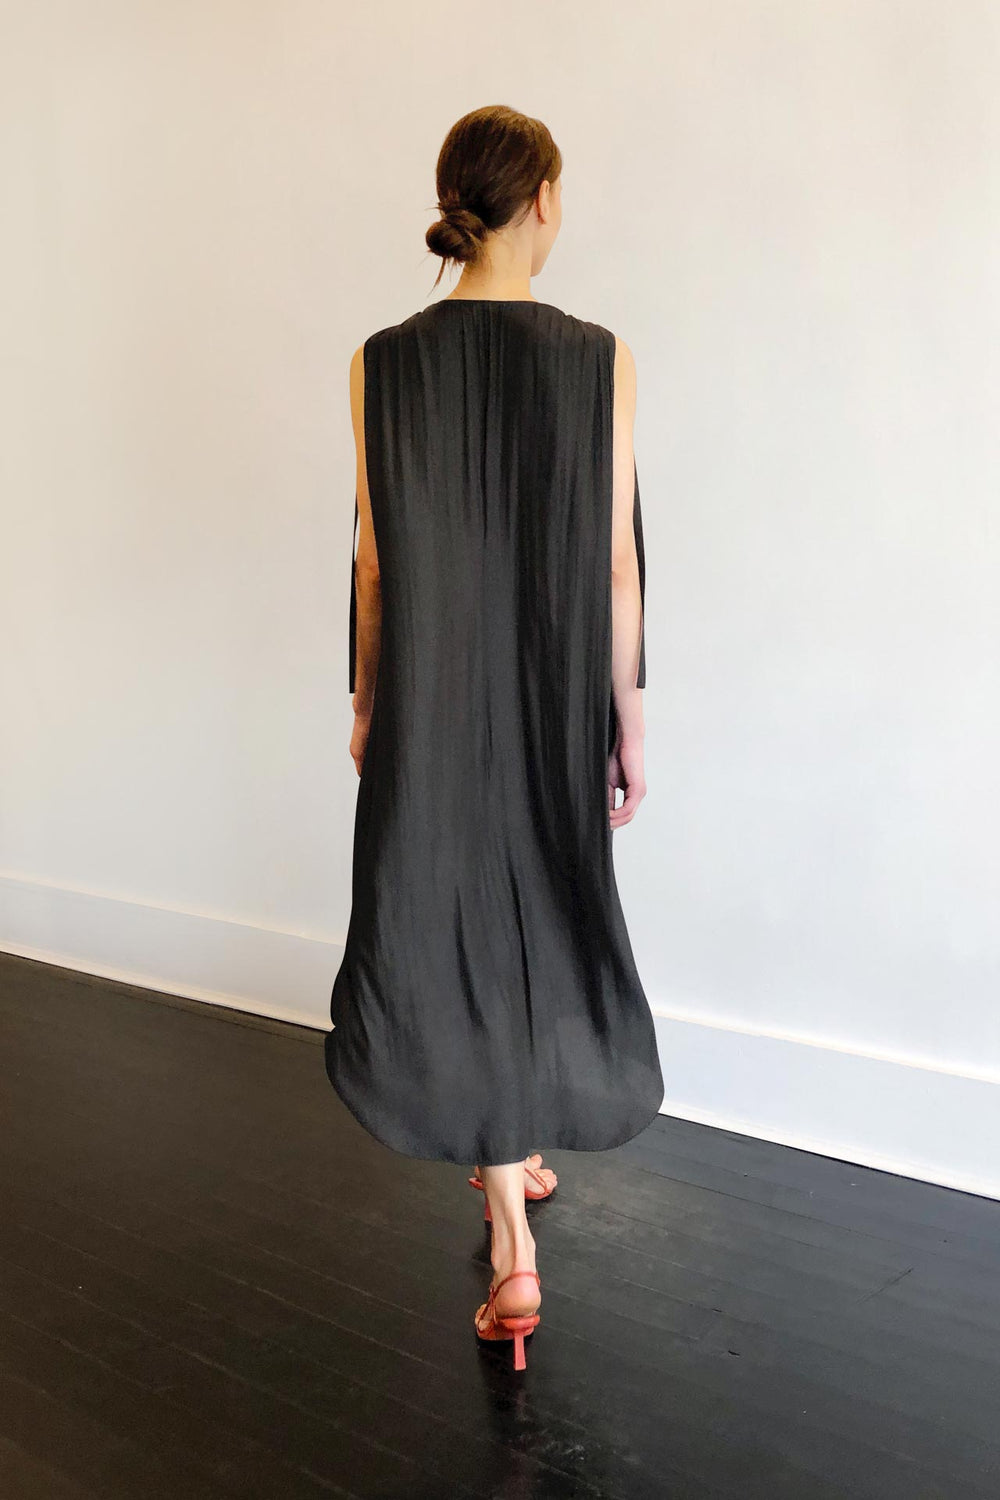 Fashion Designer CARL KAPP collection | Patatran Onesize Fits All cocktail dress Dark Grey | Sydney Australia